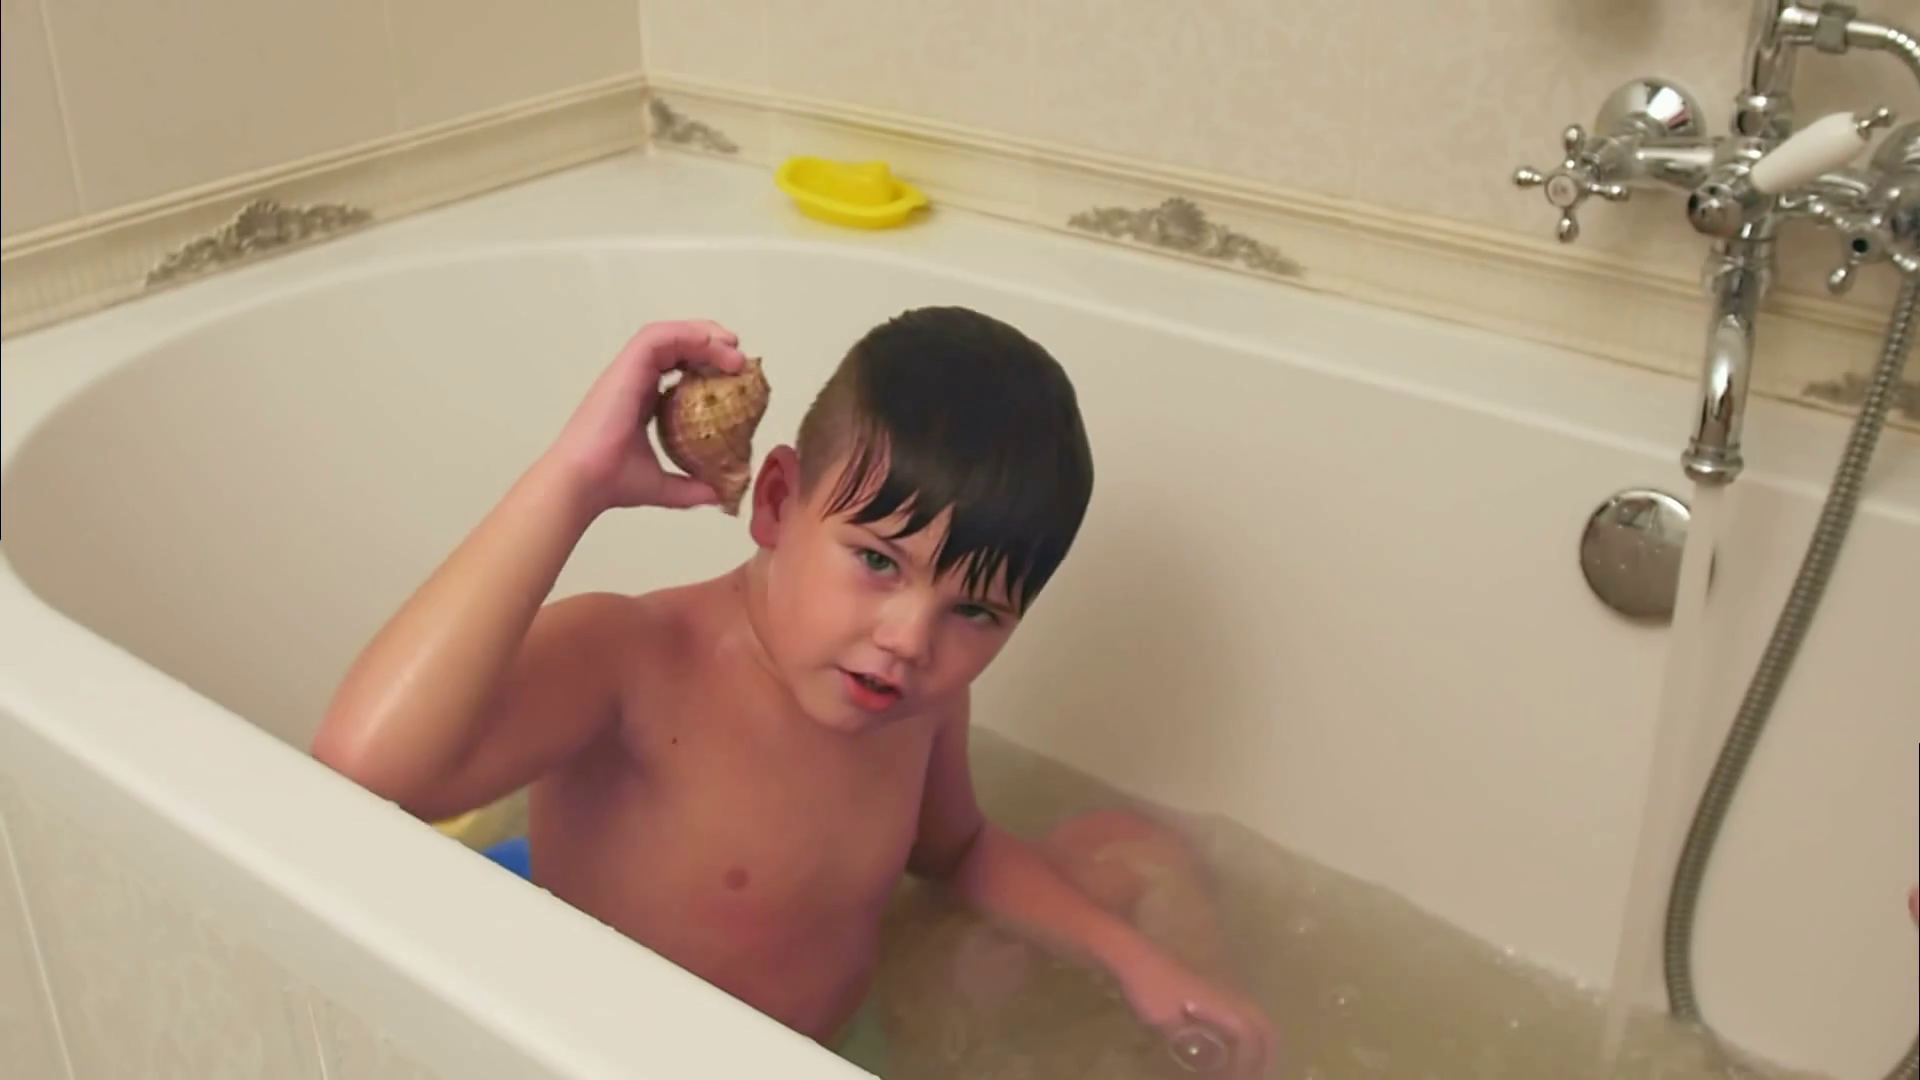 Little boy playing with seashell while taking bath in bathtub Stock Video Footage - Storyblocks